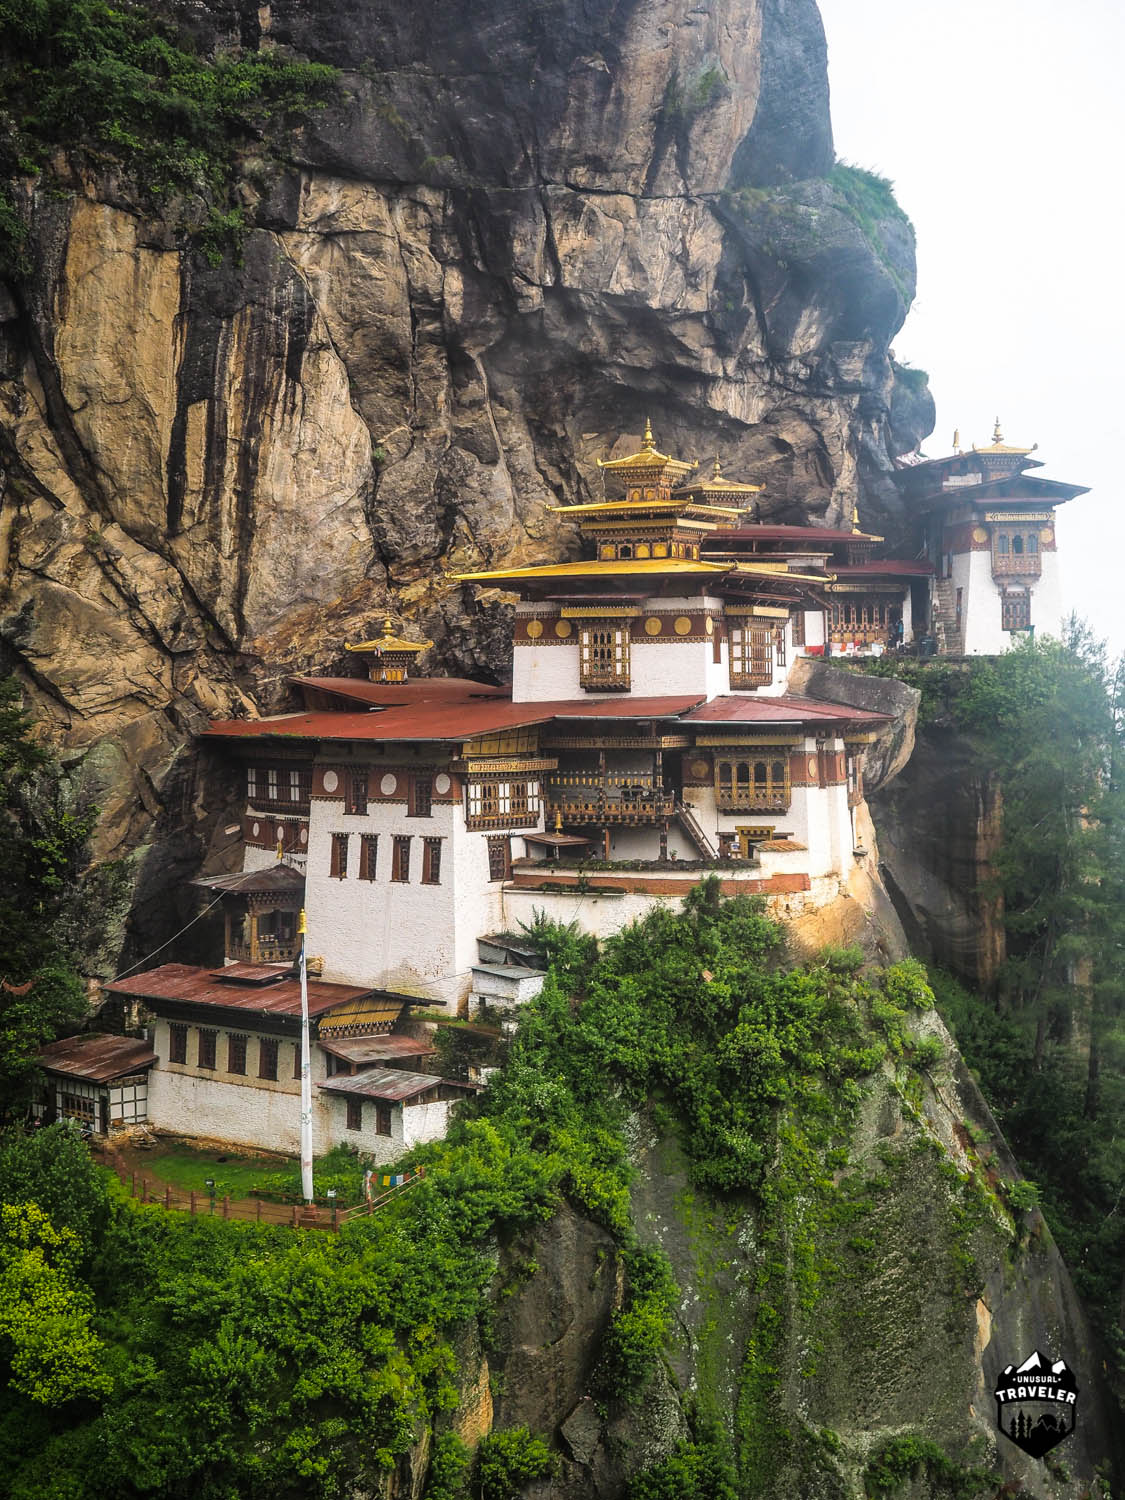 Taktsang Palphug Monastery (also known as Tiger's Nest) is the most stunning monastery anywhere in the world.